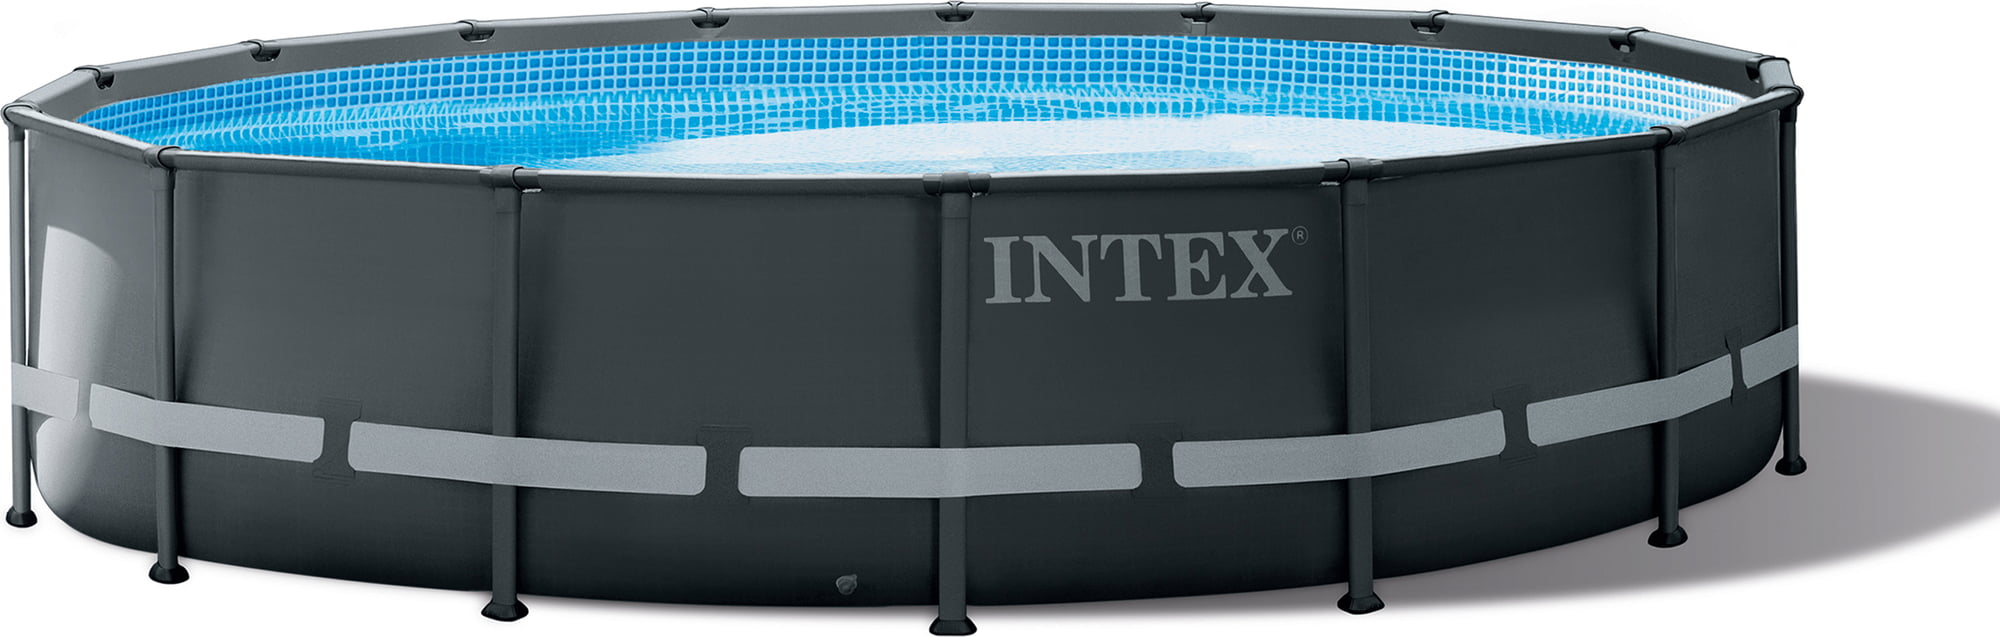 Intex Pool Nicht Rund Frame Pool Ultra Rondo Xtr Ø 488 X 122 Cm